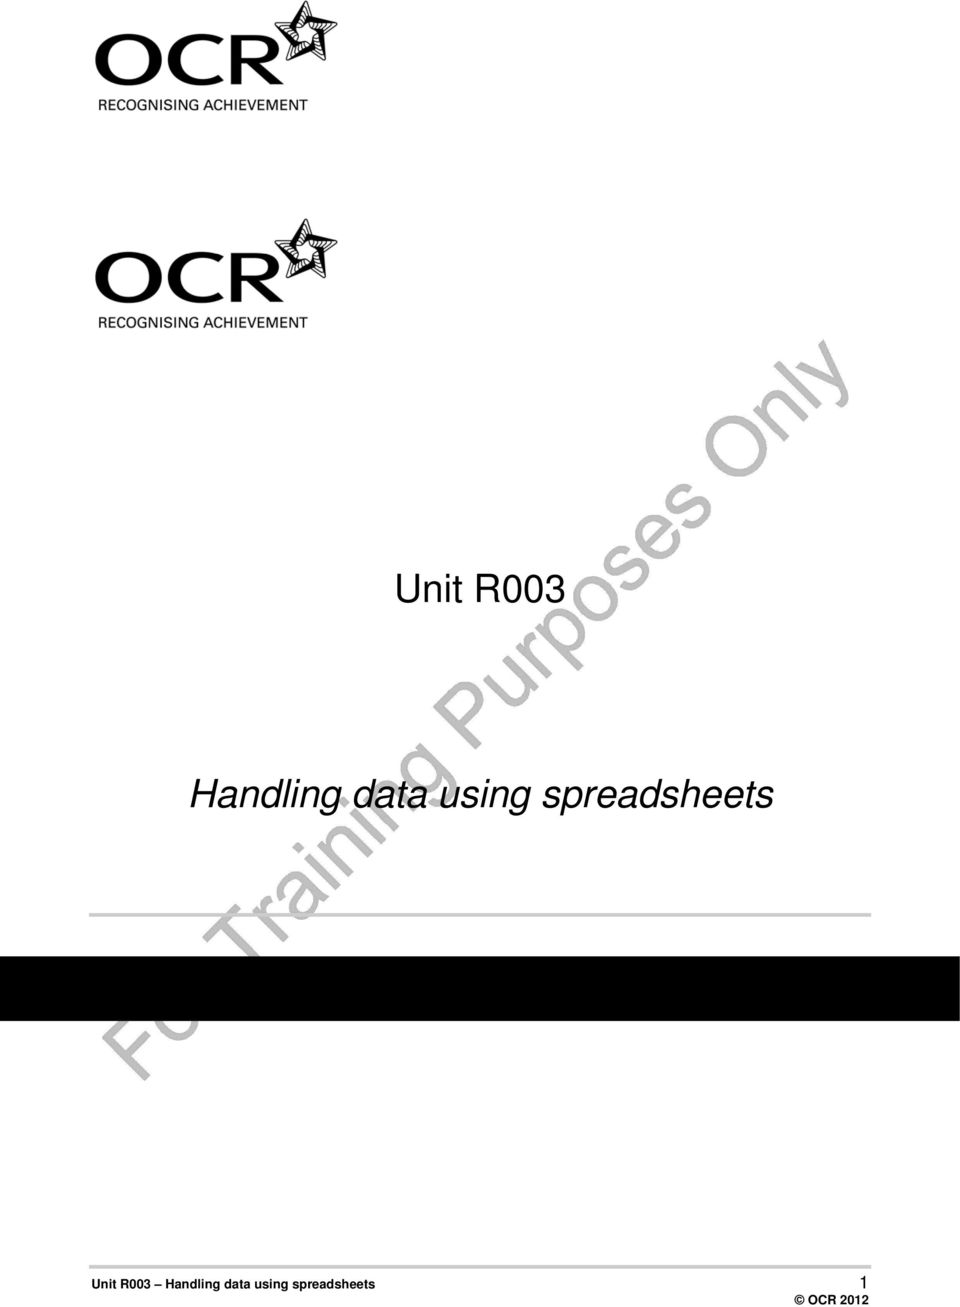 Unit r003 handling data using spreadsheets pdf 2 2 24 unit r003 handling data using spreadsheets aims this unit builds on units r001 and r002 and learners will be able to apply the skills fandeluxe Images